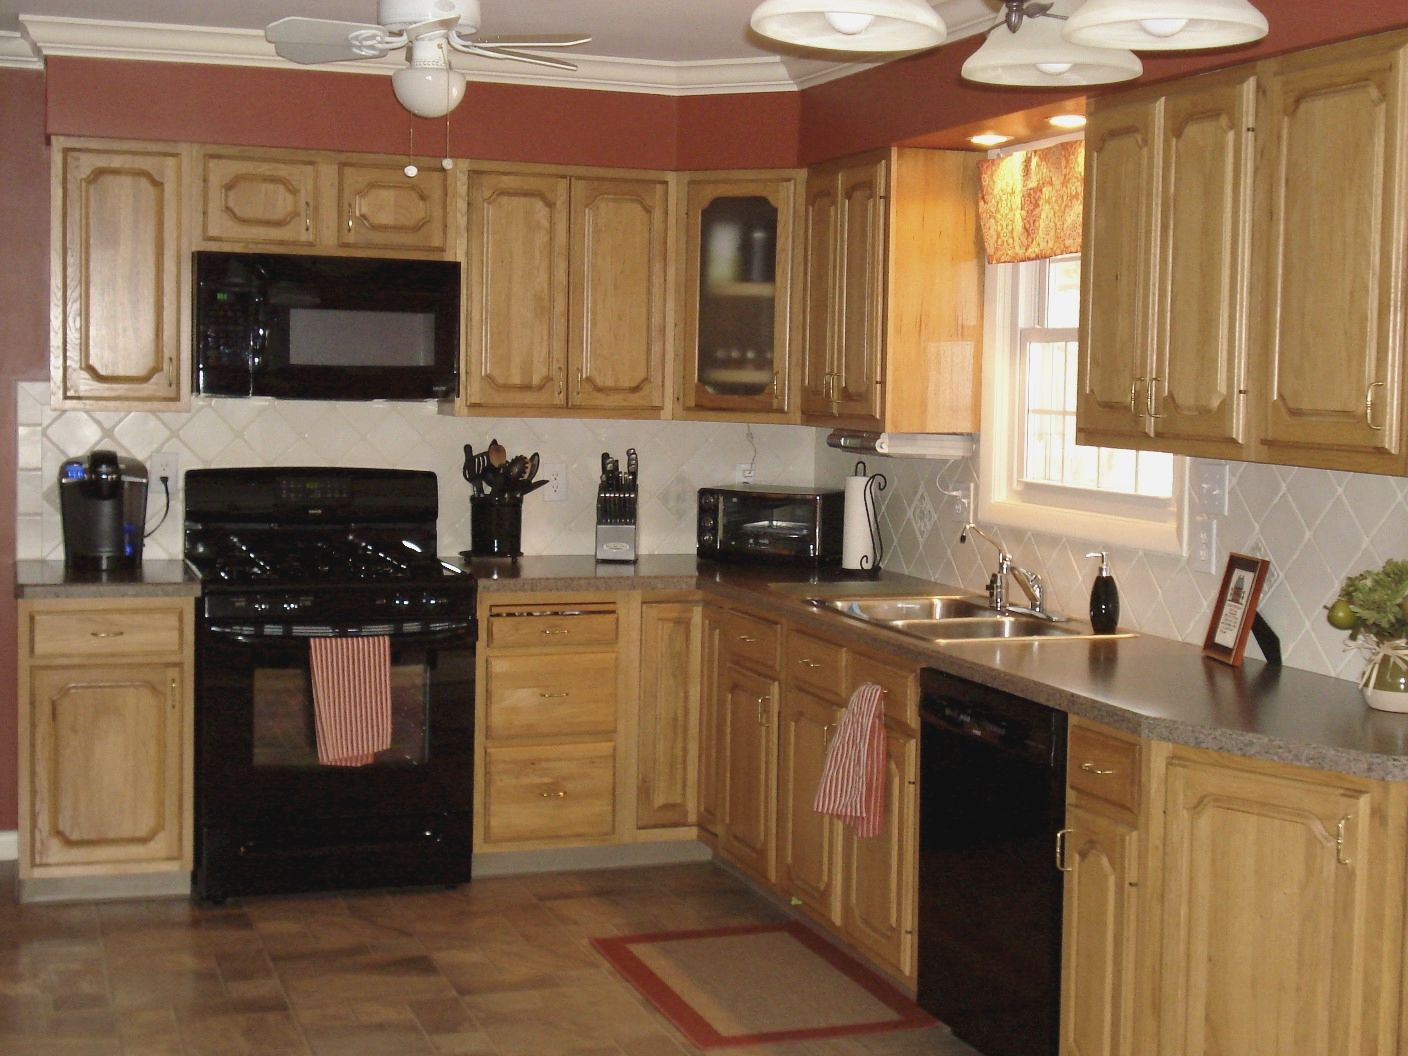 Kitchen Color Ideas With Oak Cabinets And Black Appliances Kitchen